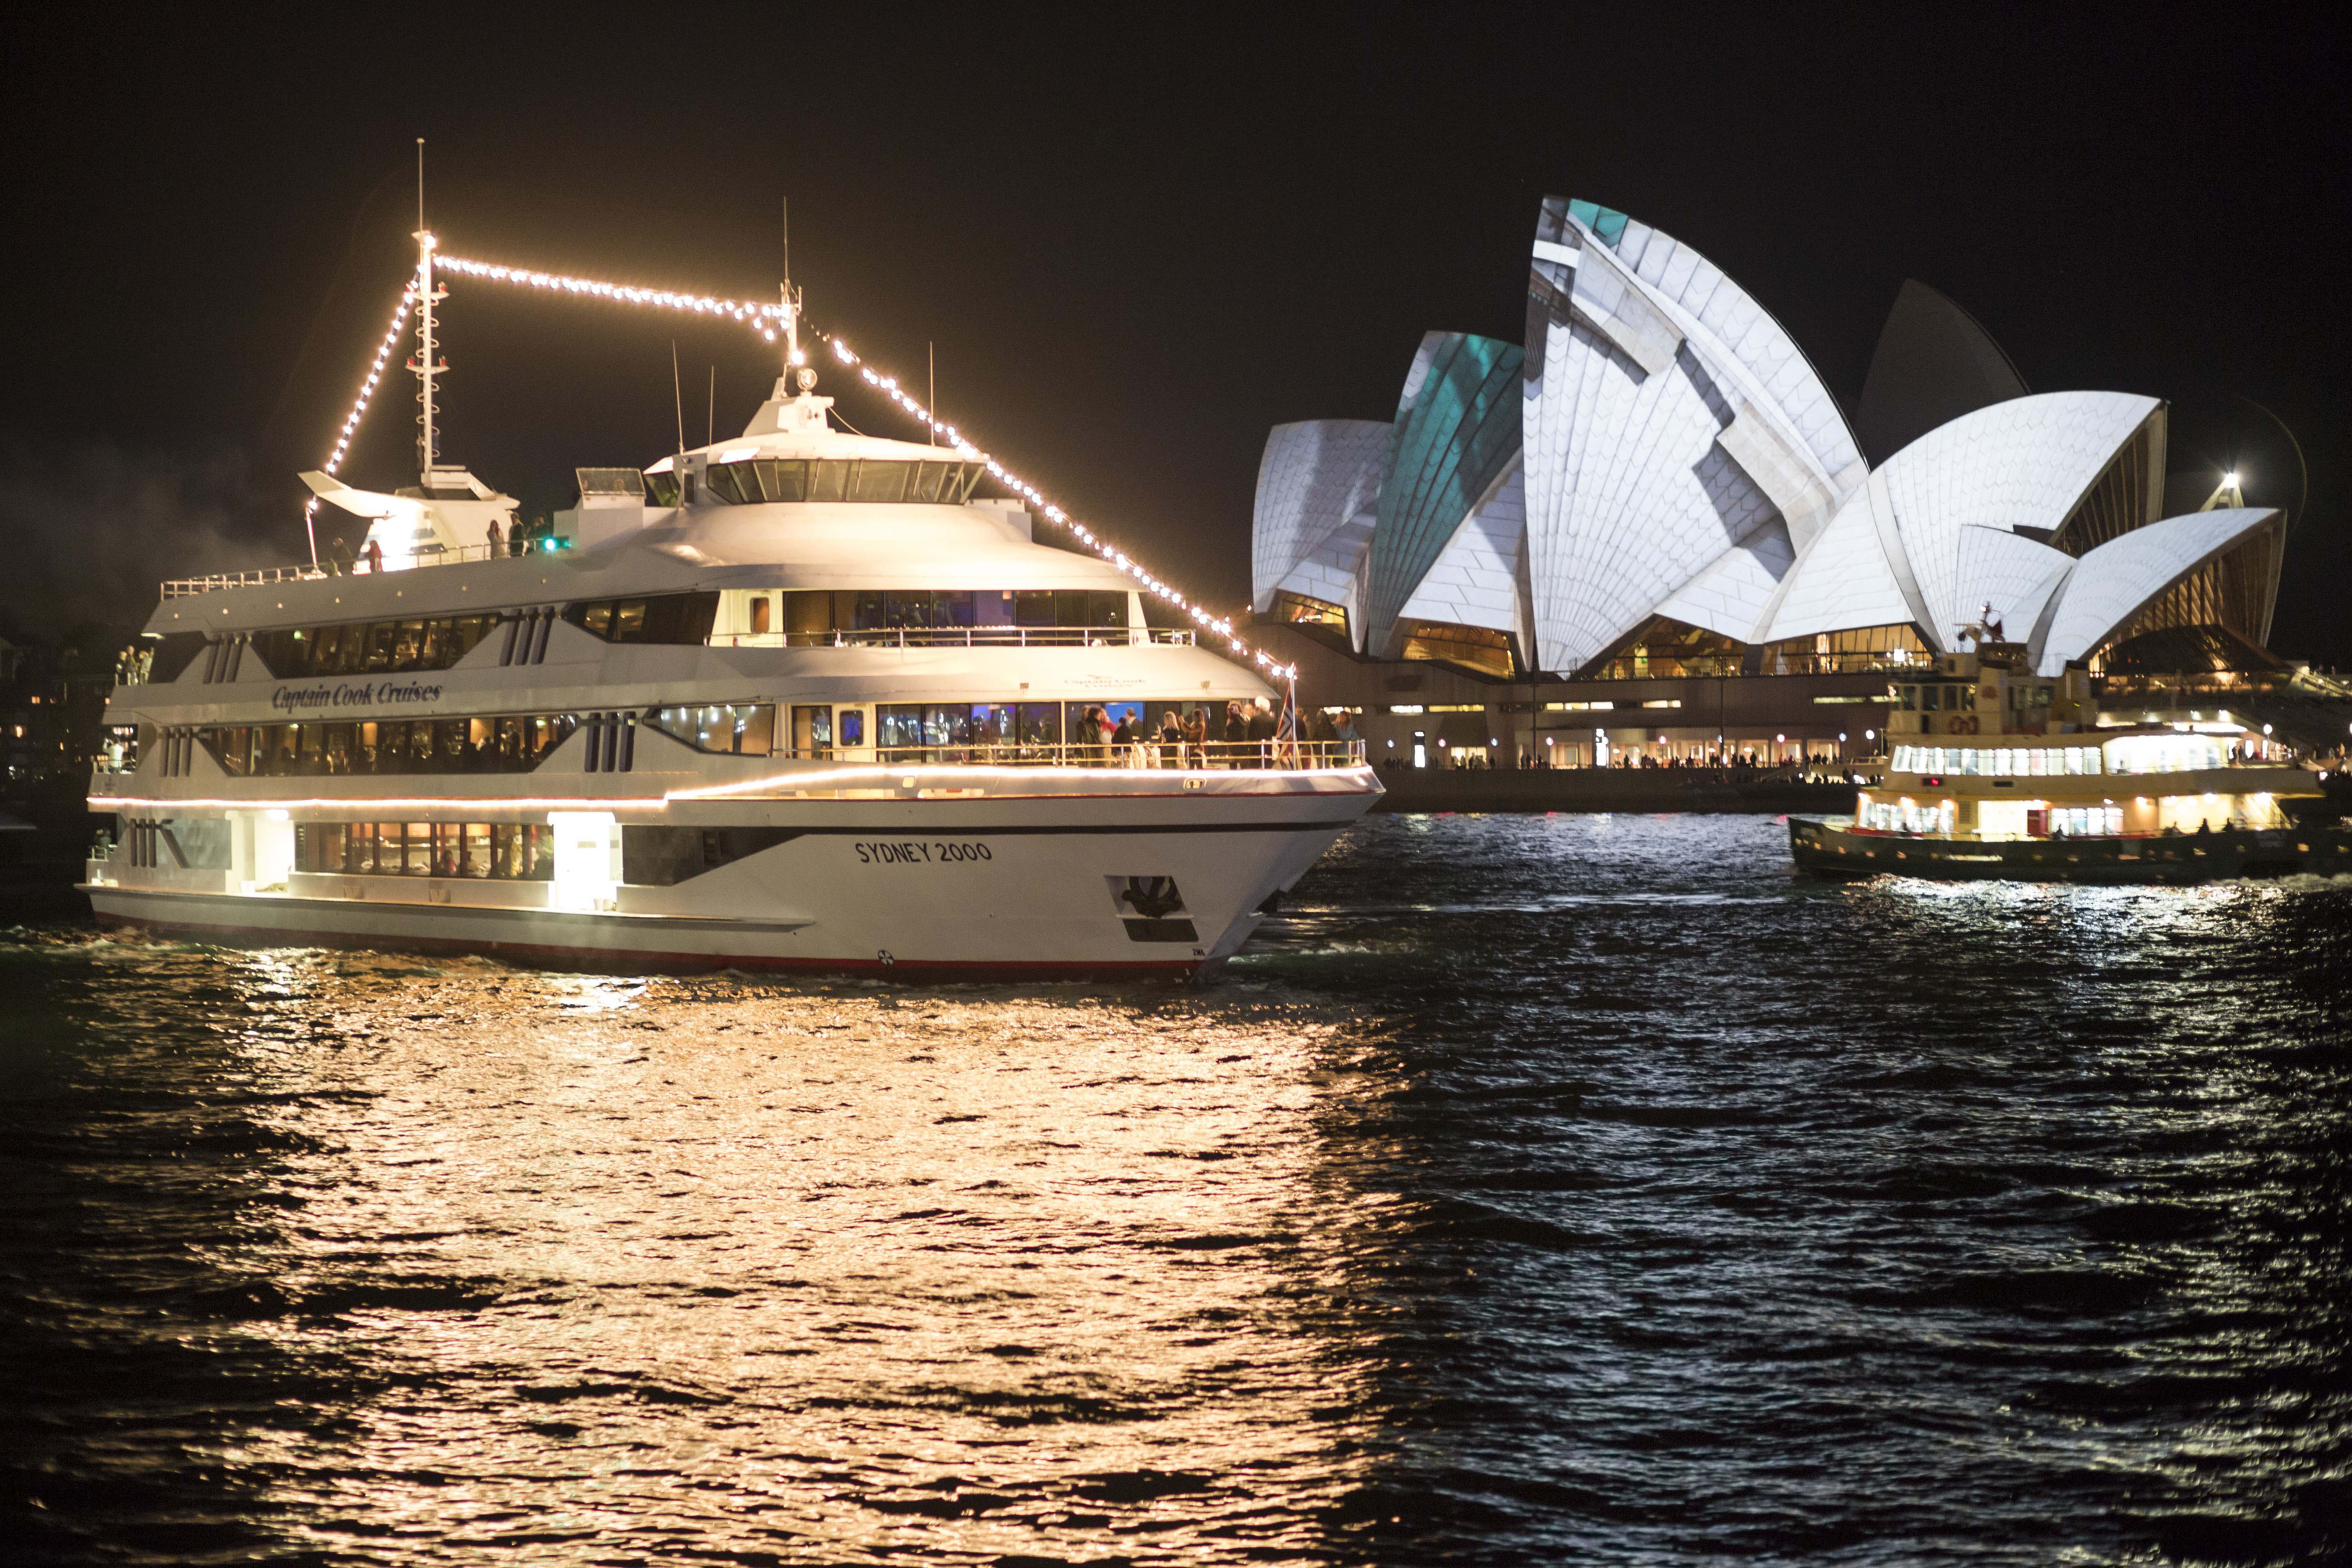 Whale Watching Season 18 May - 30 October Combine the sights of Sydney Harbour with an open water cruise through the Heads to find the gentle giants of the sea.